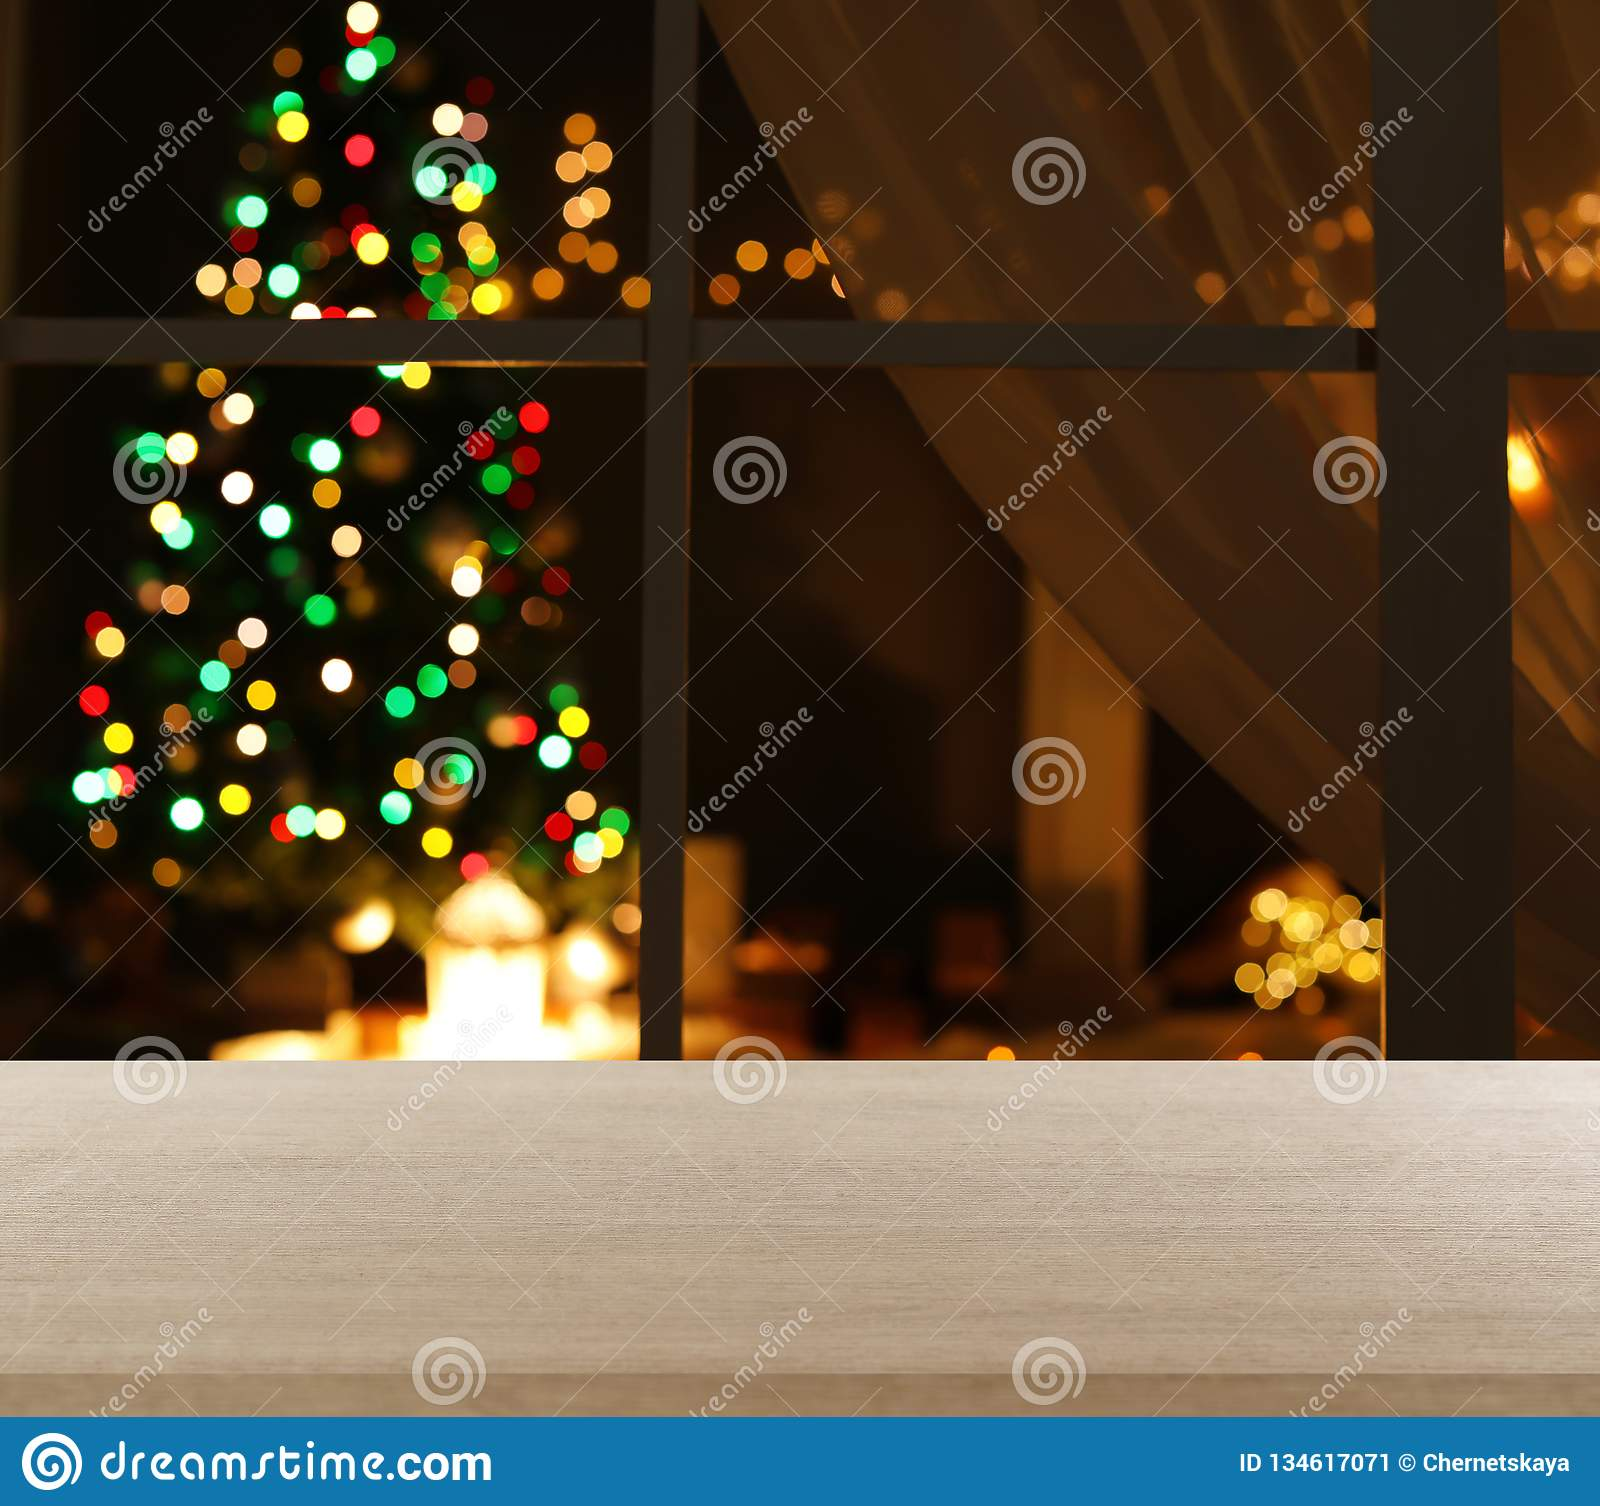 Blurred View Of Stylish Living Room Interior With Christmas